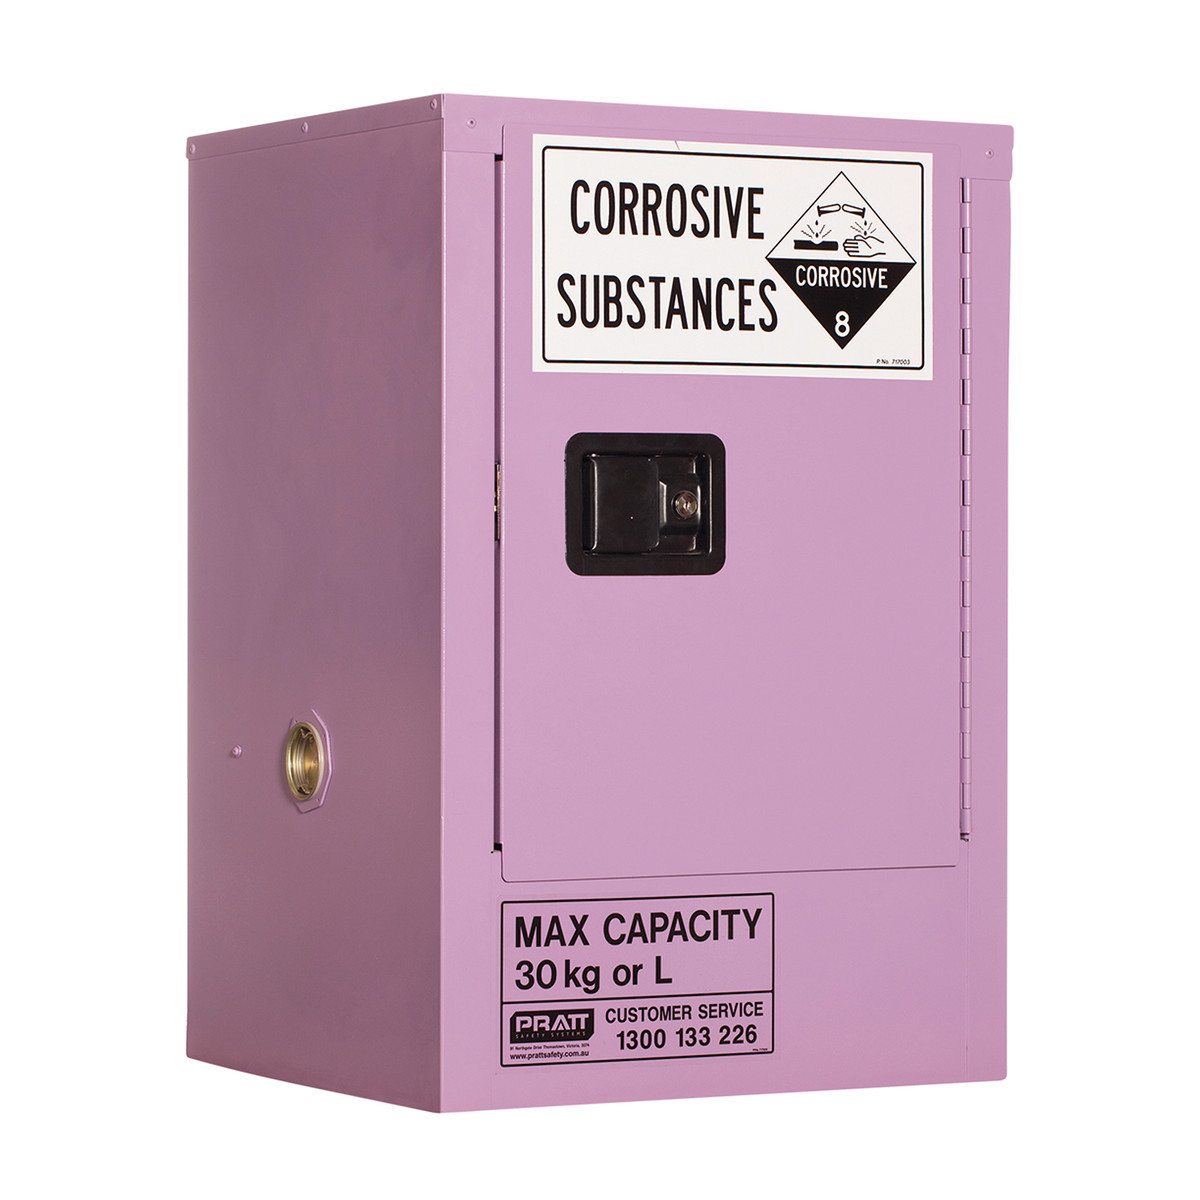 Corrosive Storage Cabinet 30 Liters - 1 Door, 1 Shelf